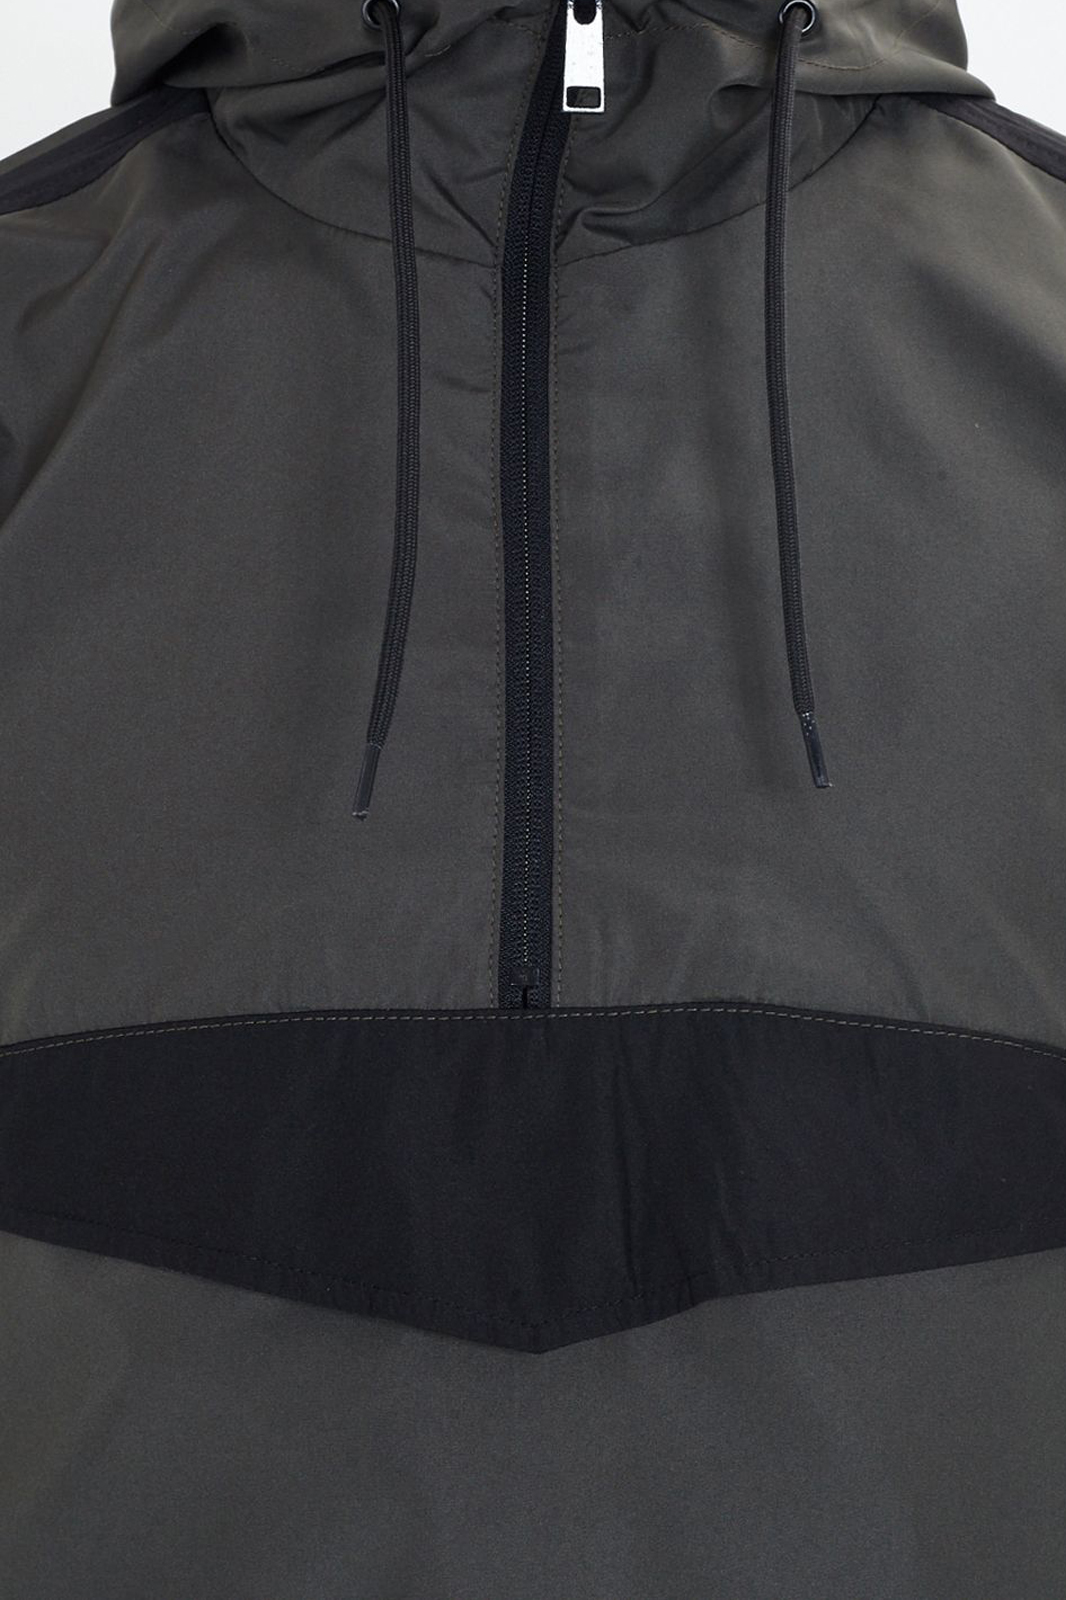 Men/'s Brave Soul Cagoule Style Lightweight Pull Over Running Jacket New SS18